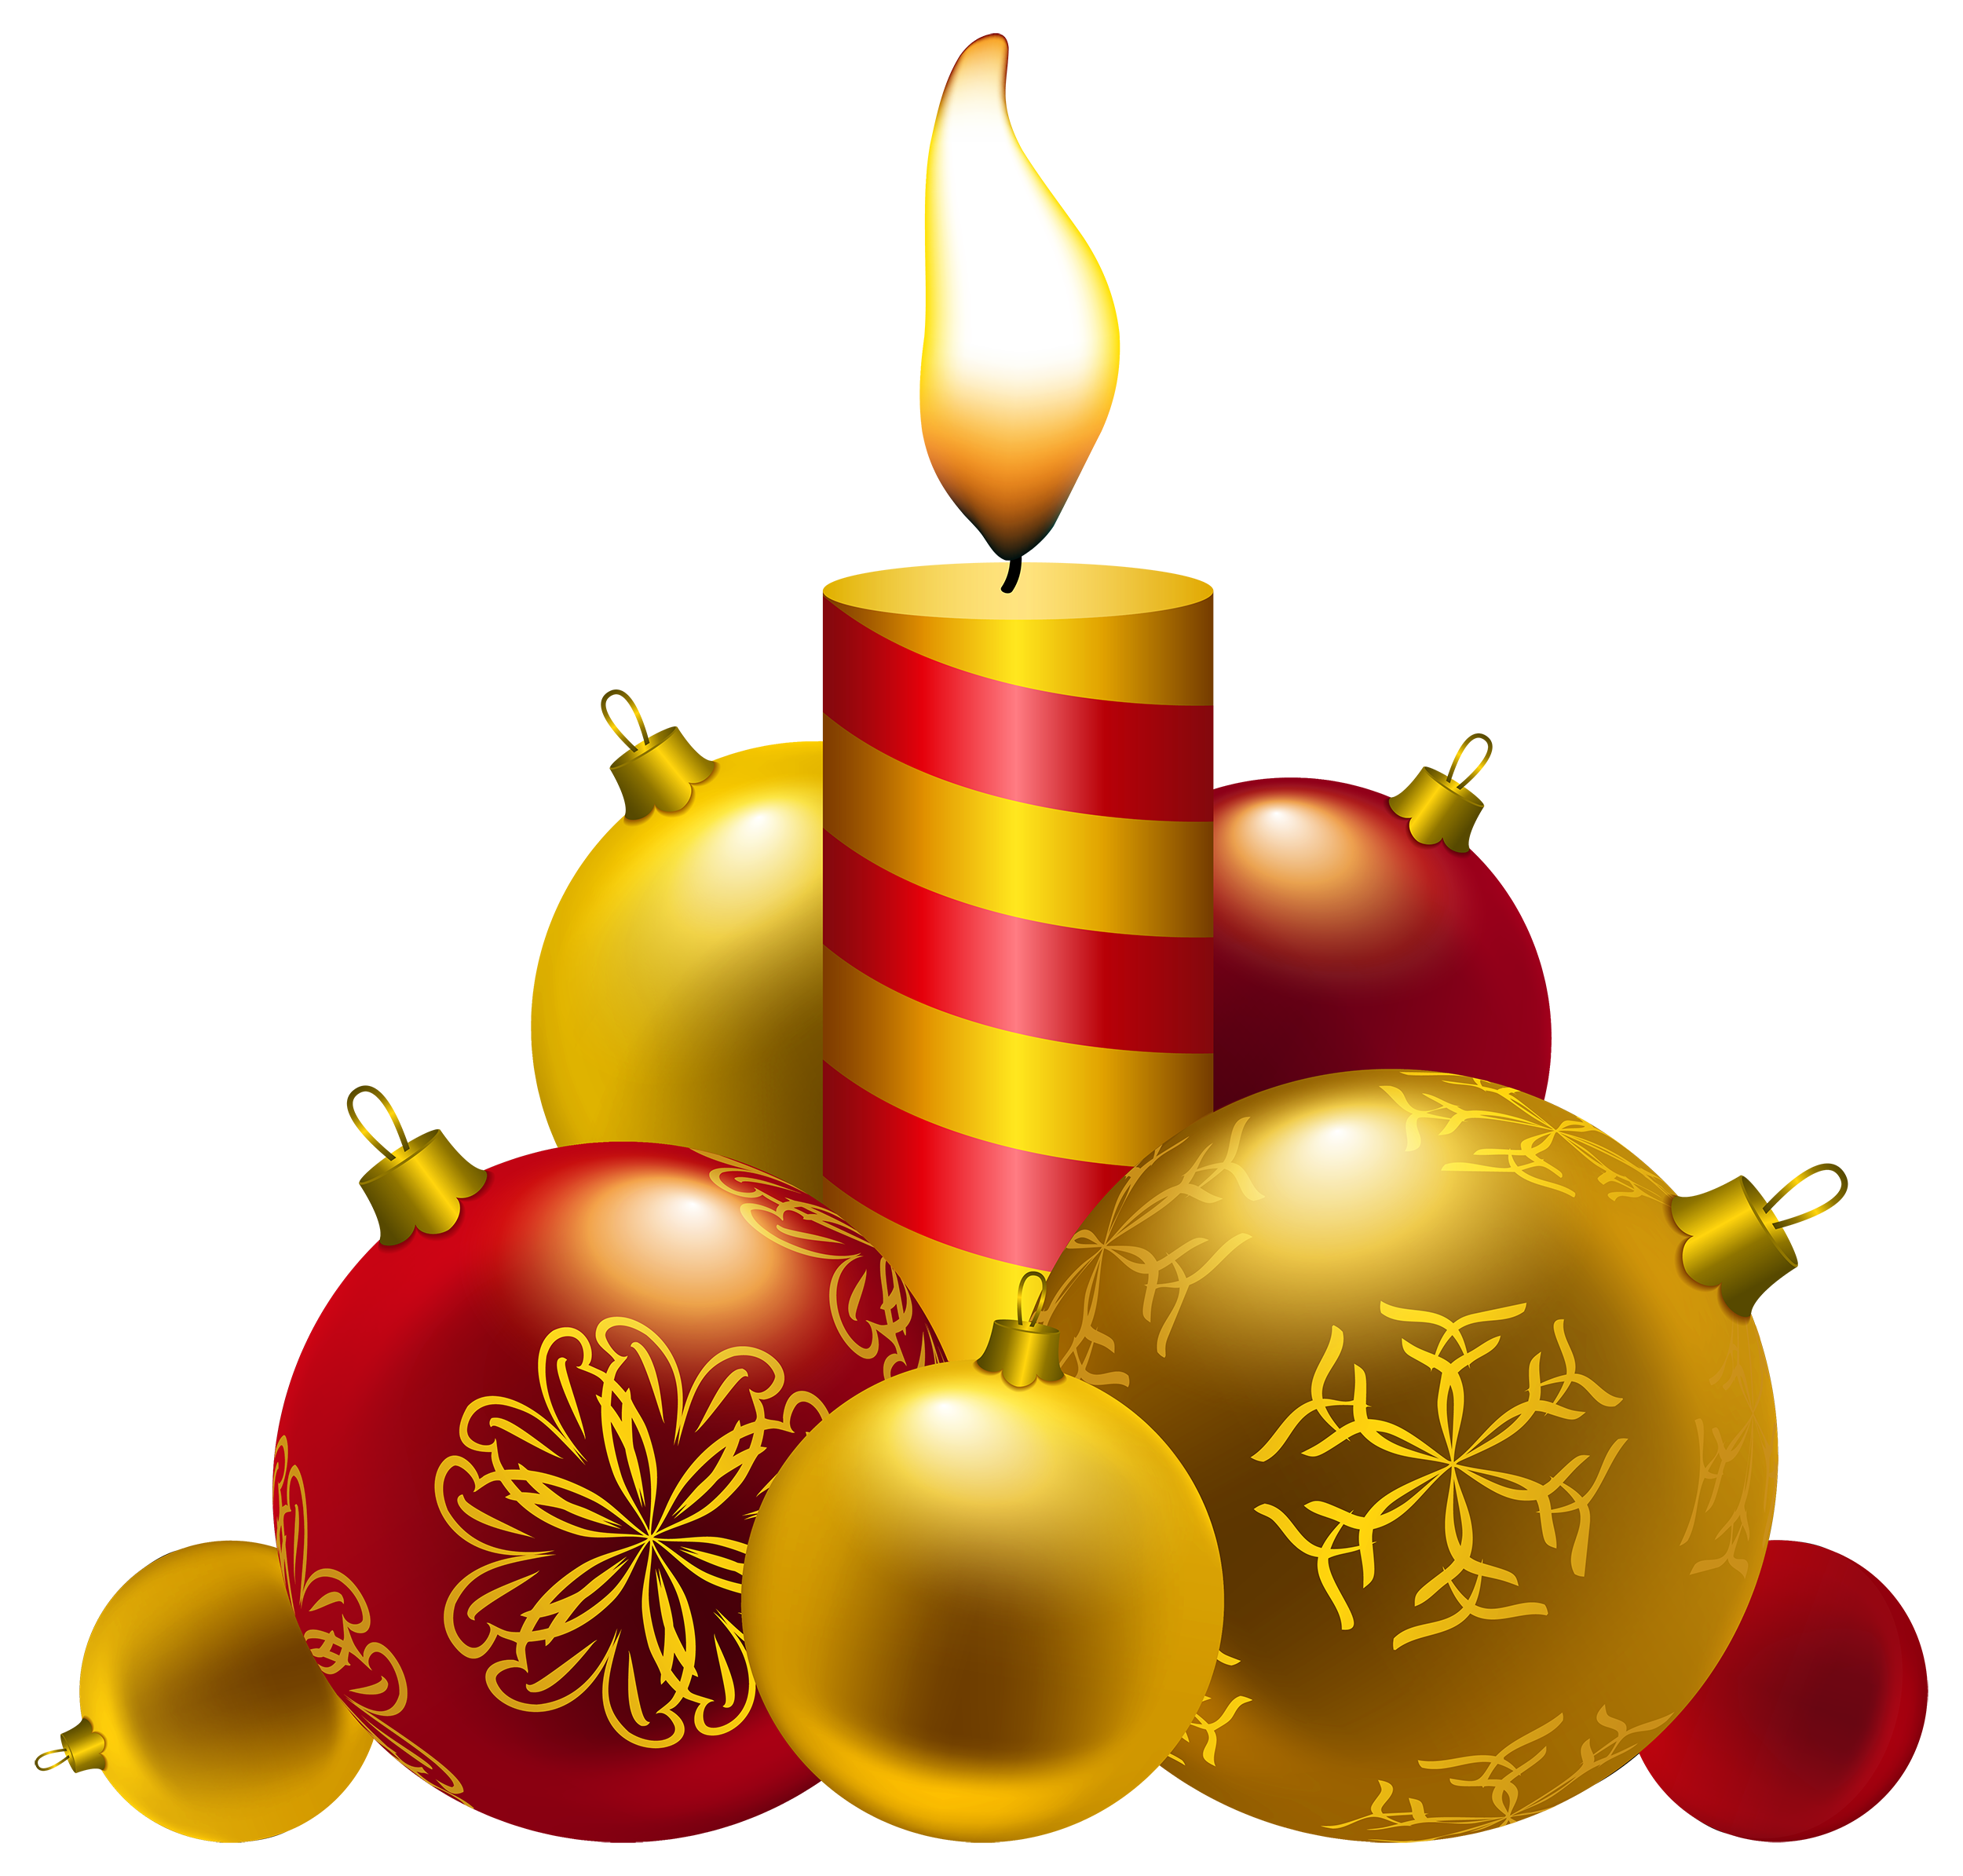 Candles clipart best web. Christmas images png